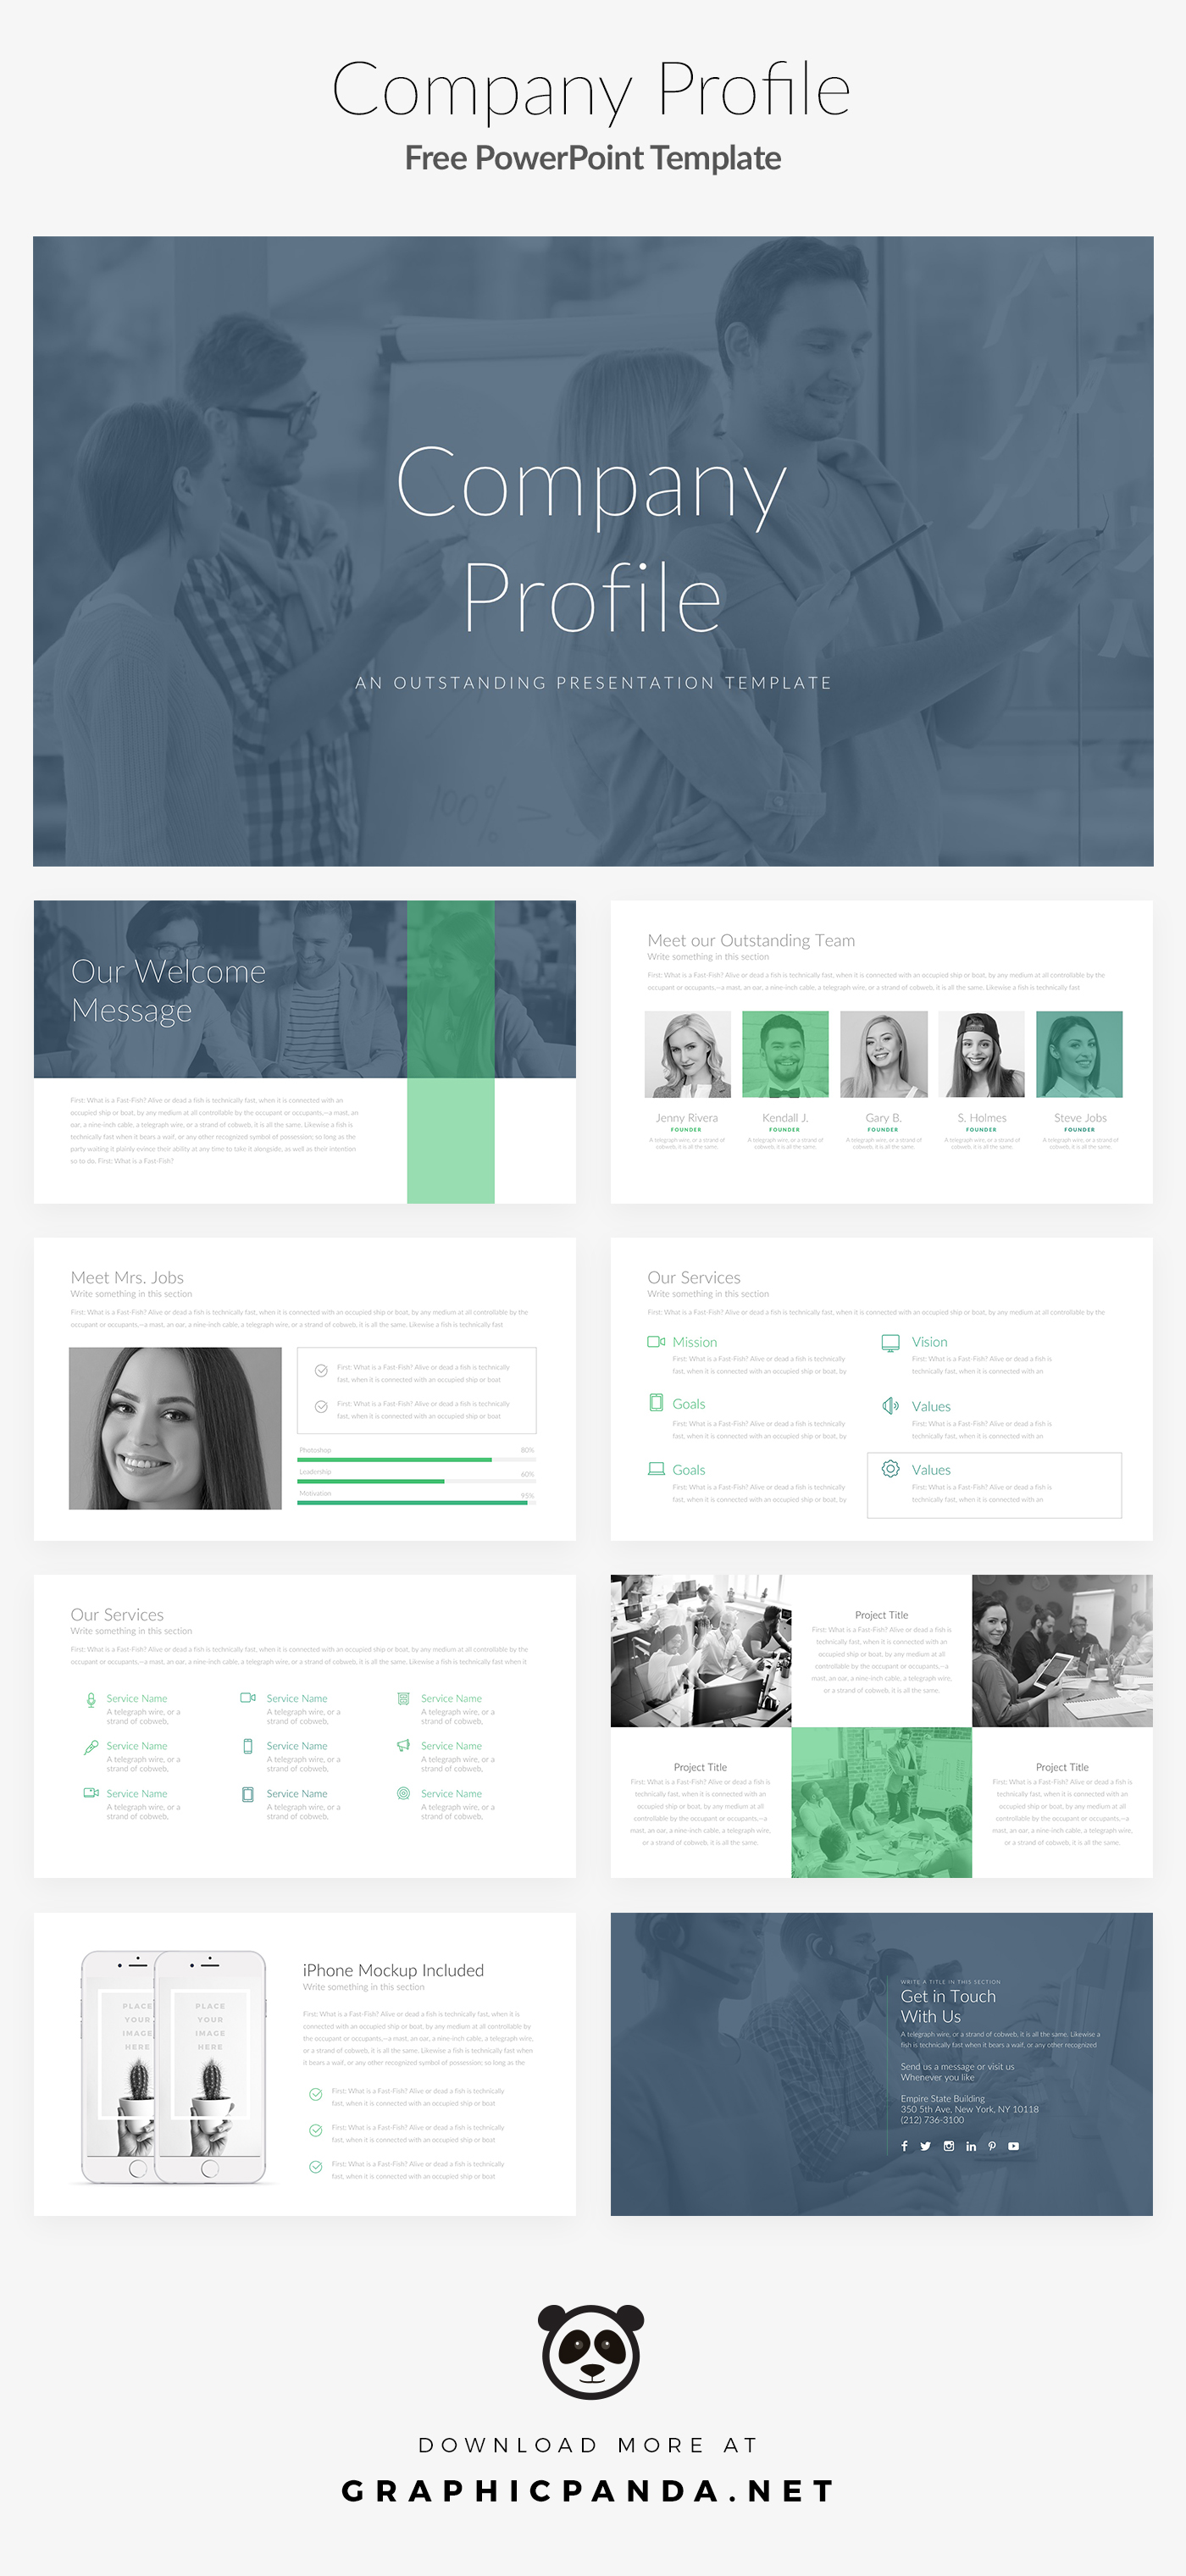 Free Powerpoint Template Company Profile Pitch Deck On